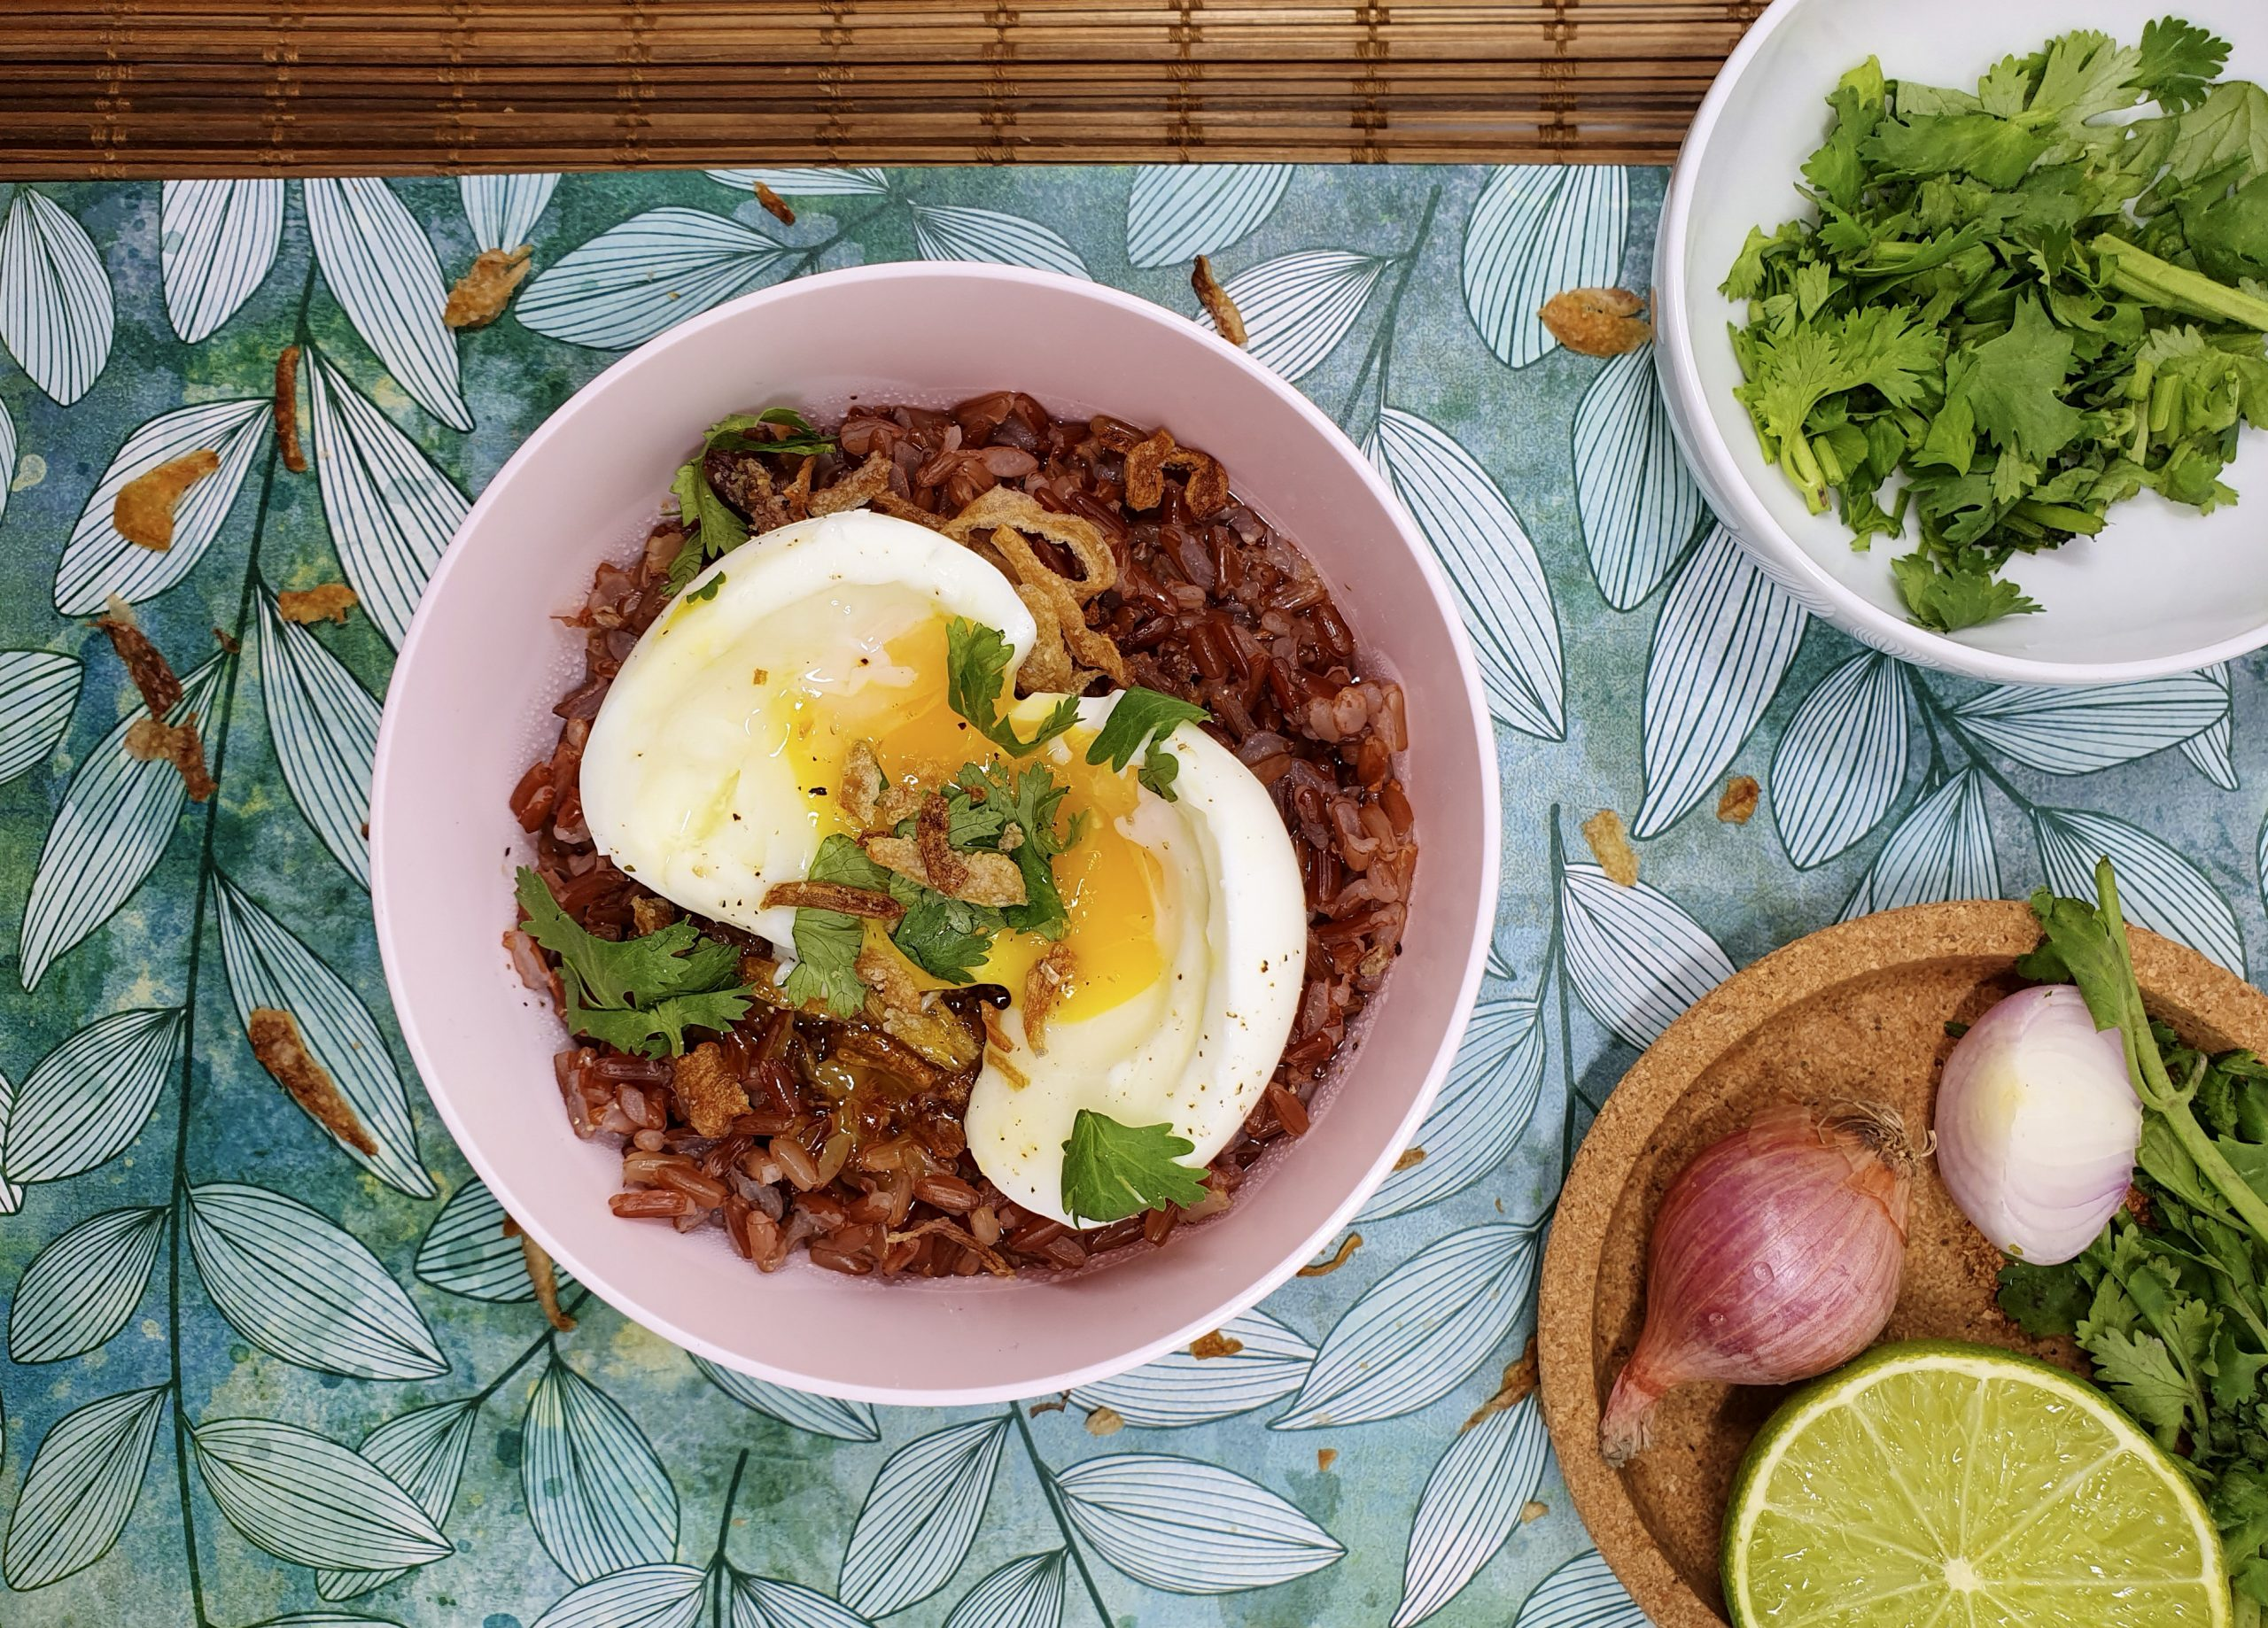 Bowl with red rice porridge with an egg and a plate with lemon, onion and parsley